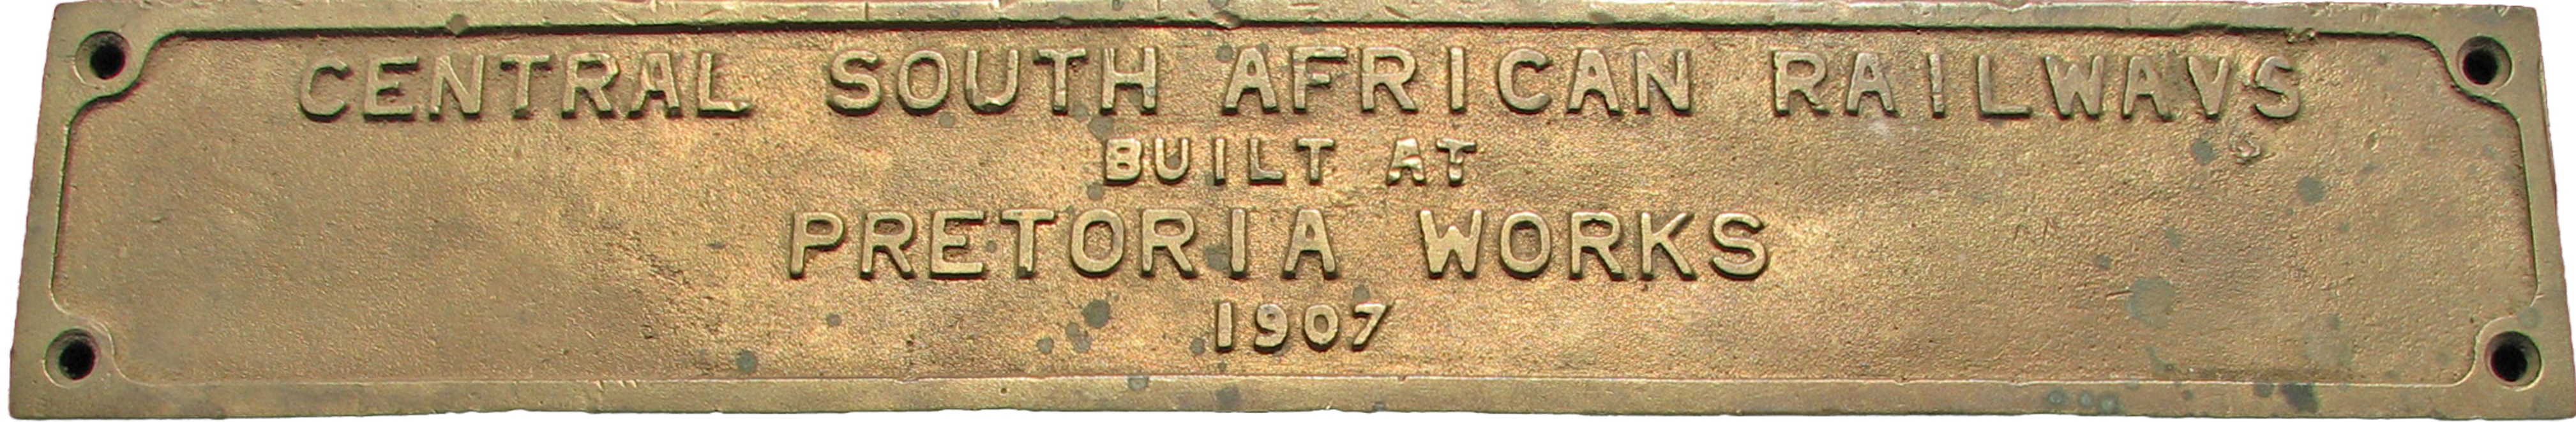 South African Railways Brass Coach Plate Central